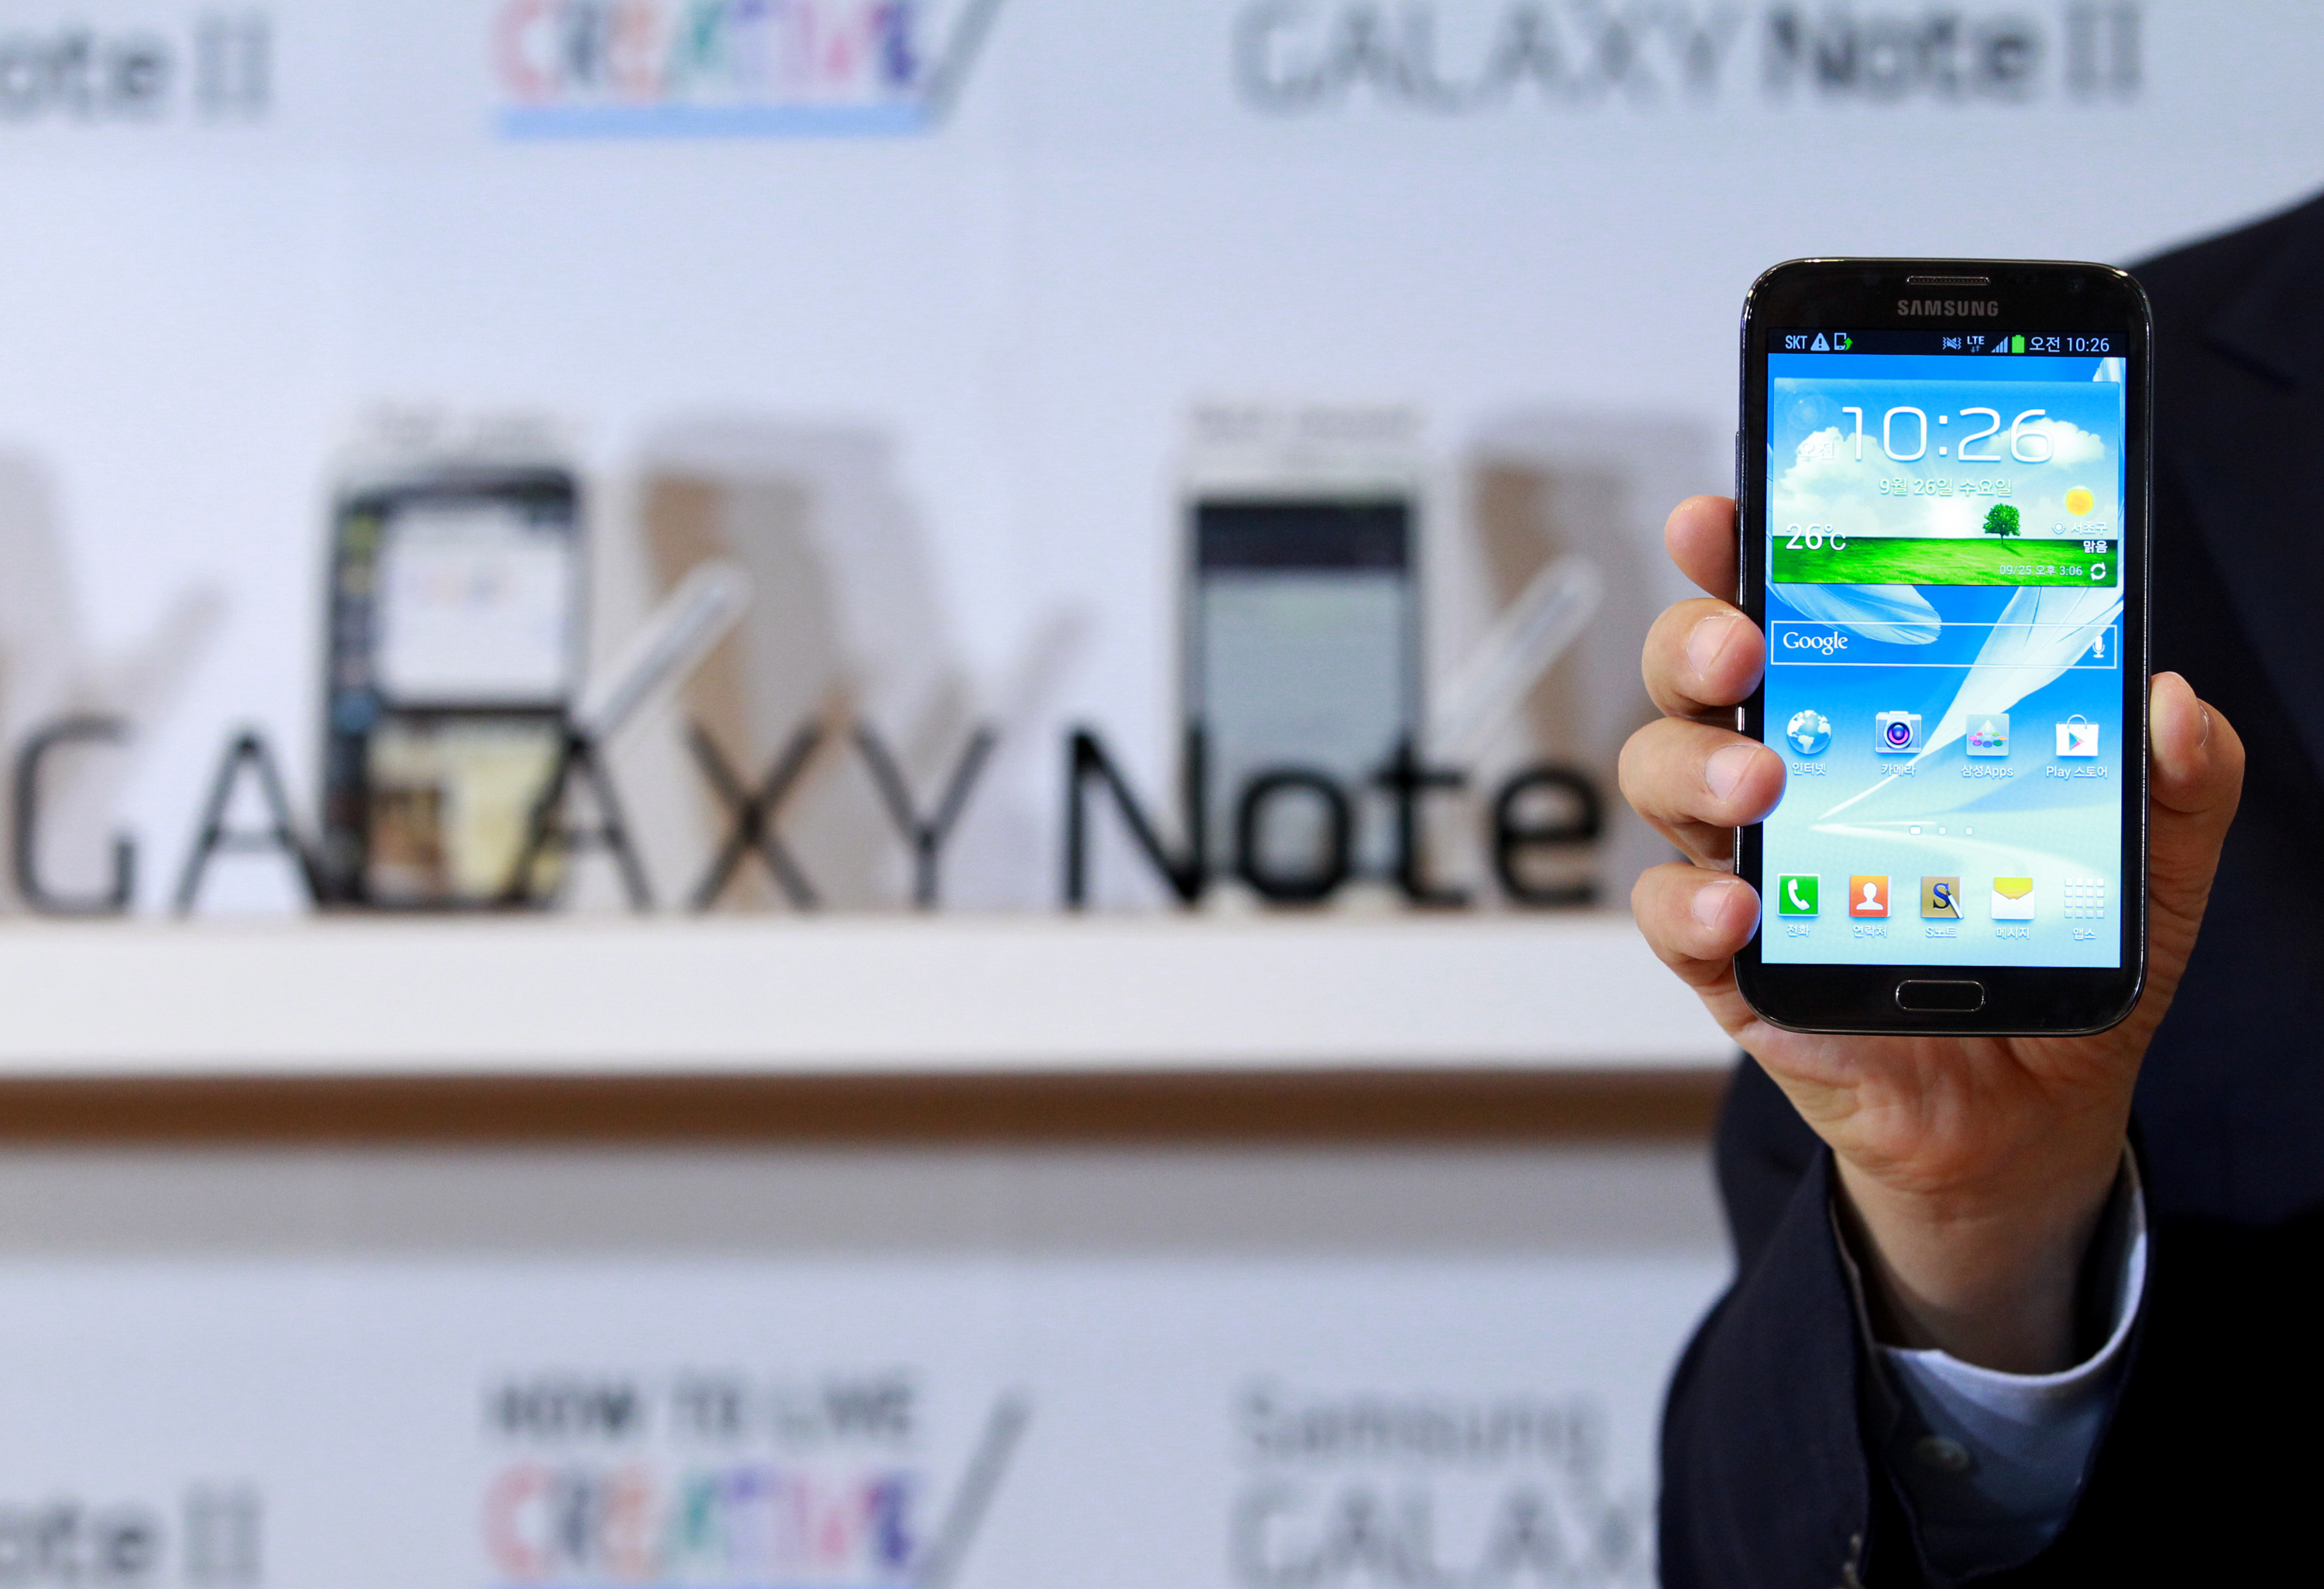 A passenger's Samsung Galaxy Note II almost caught on fire during a recent flight to Chennai.